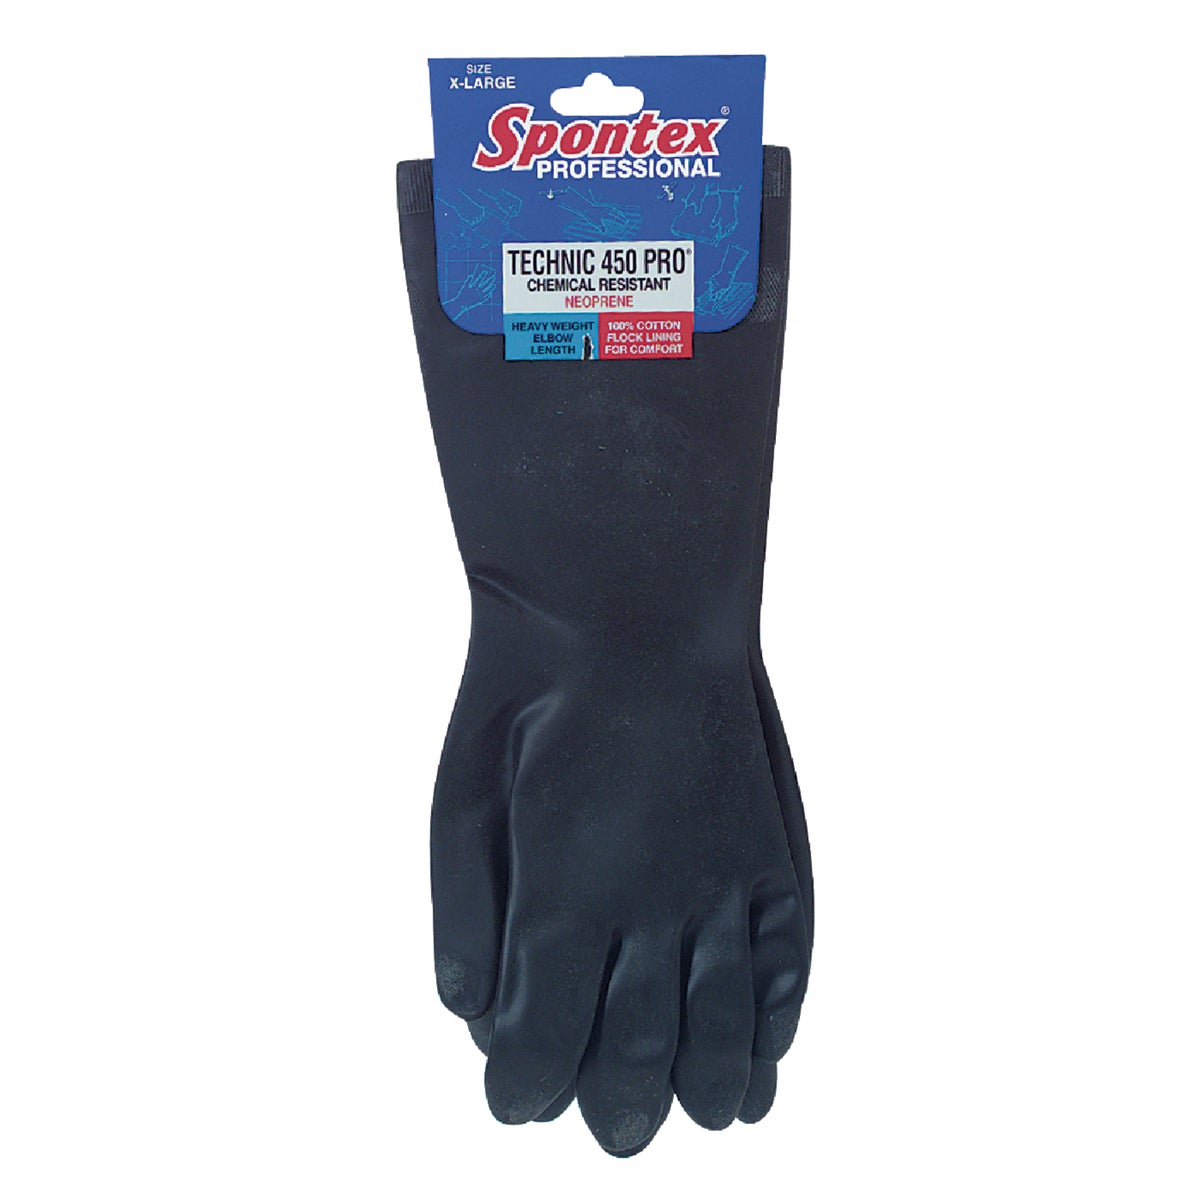 X-LARGE RUBBER GLOVES - 33556 by Lehigh Spontex